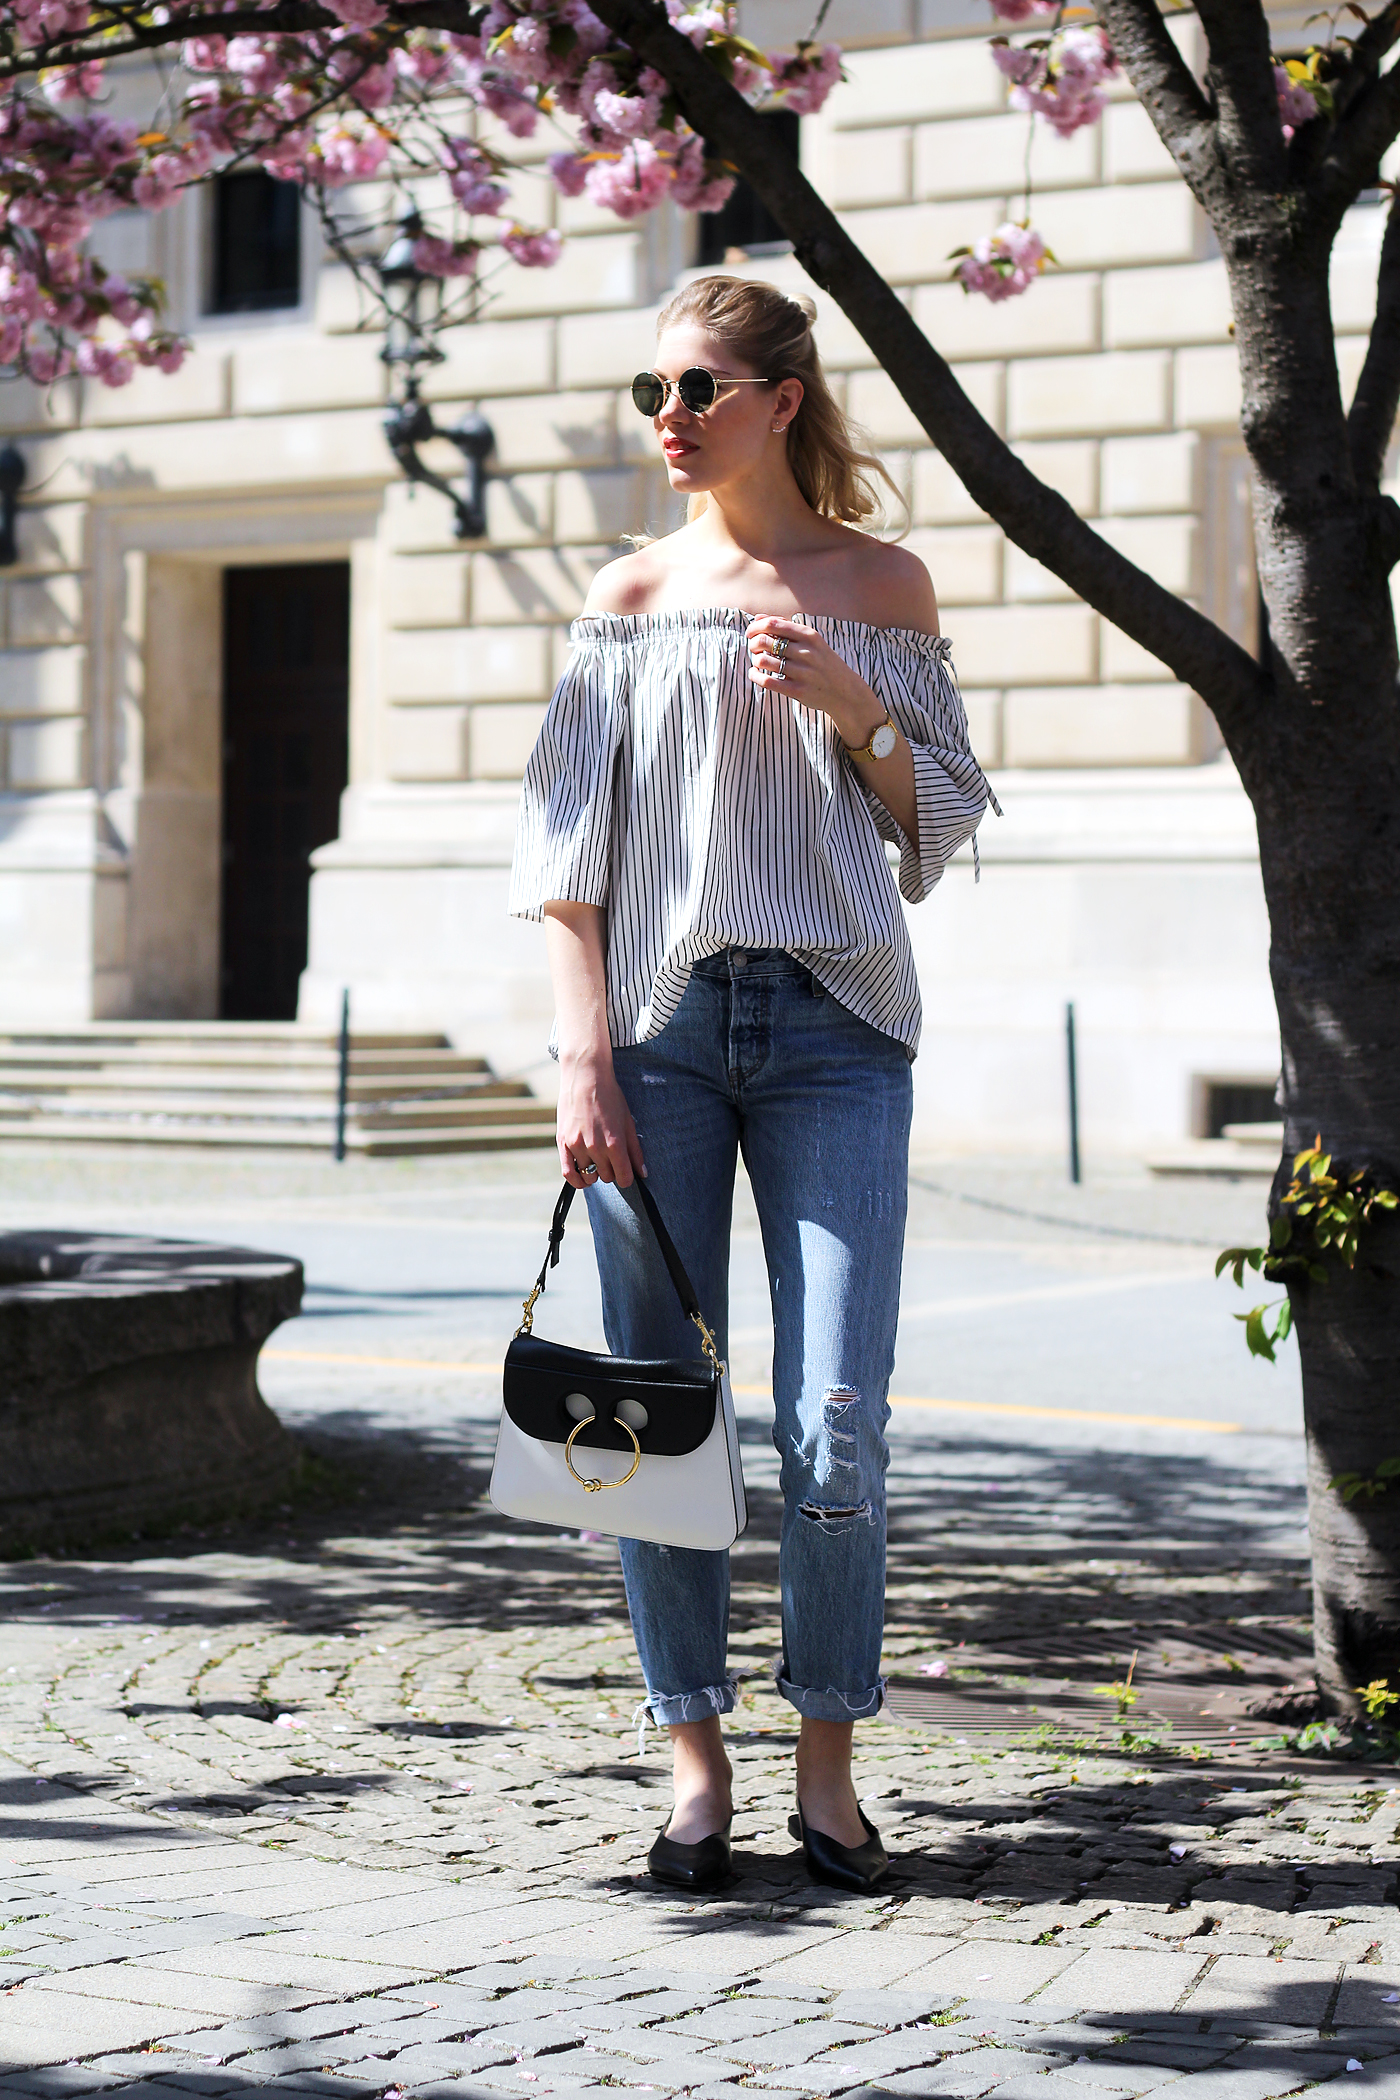 somehappyshoes_verenachrist_off-shoulder-blouse_levis-jeans_J.w.anderson_pierce_bag4